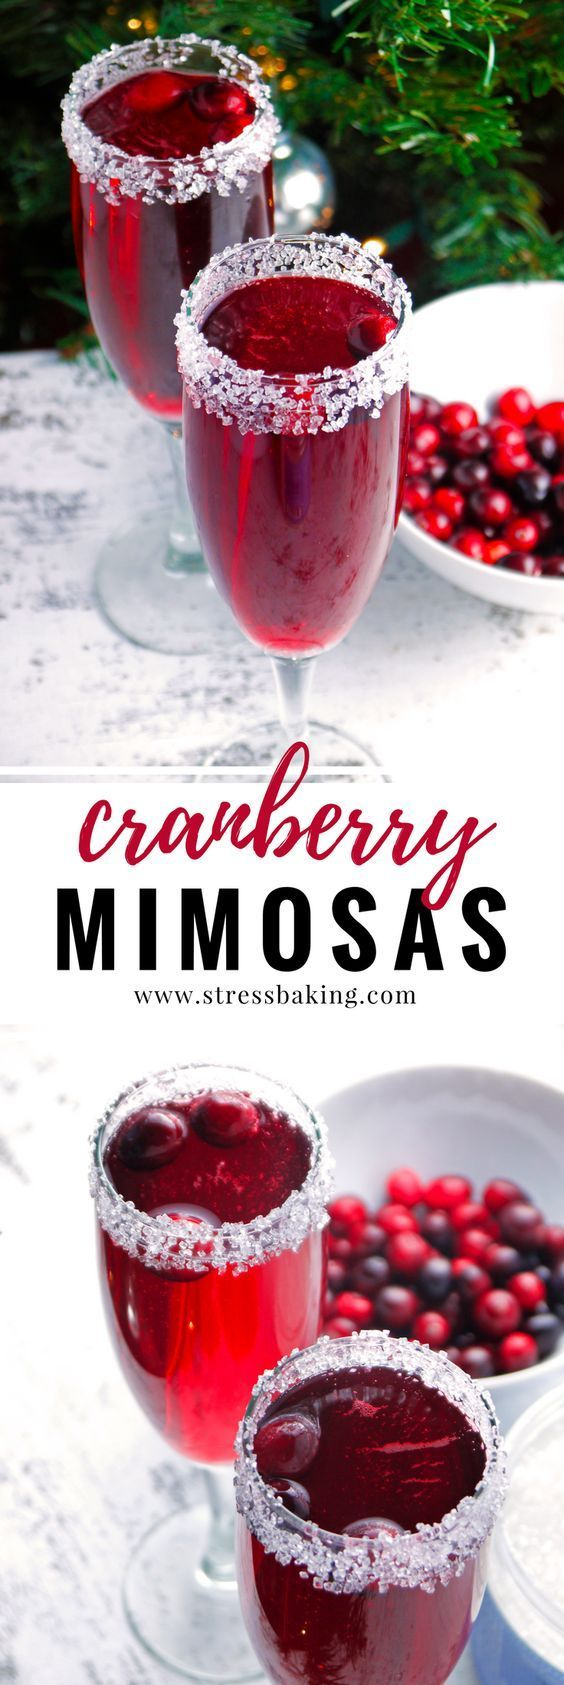 Cranberry Mimosas: A cranberry lover's version of the standard mimosa. Tart cranberries pair perfectly with a sugar-rimmed glass and sparkling champagne bubbles! | stressbaking.com